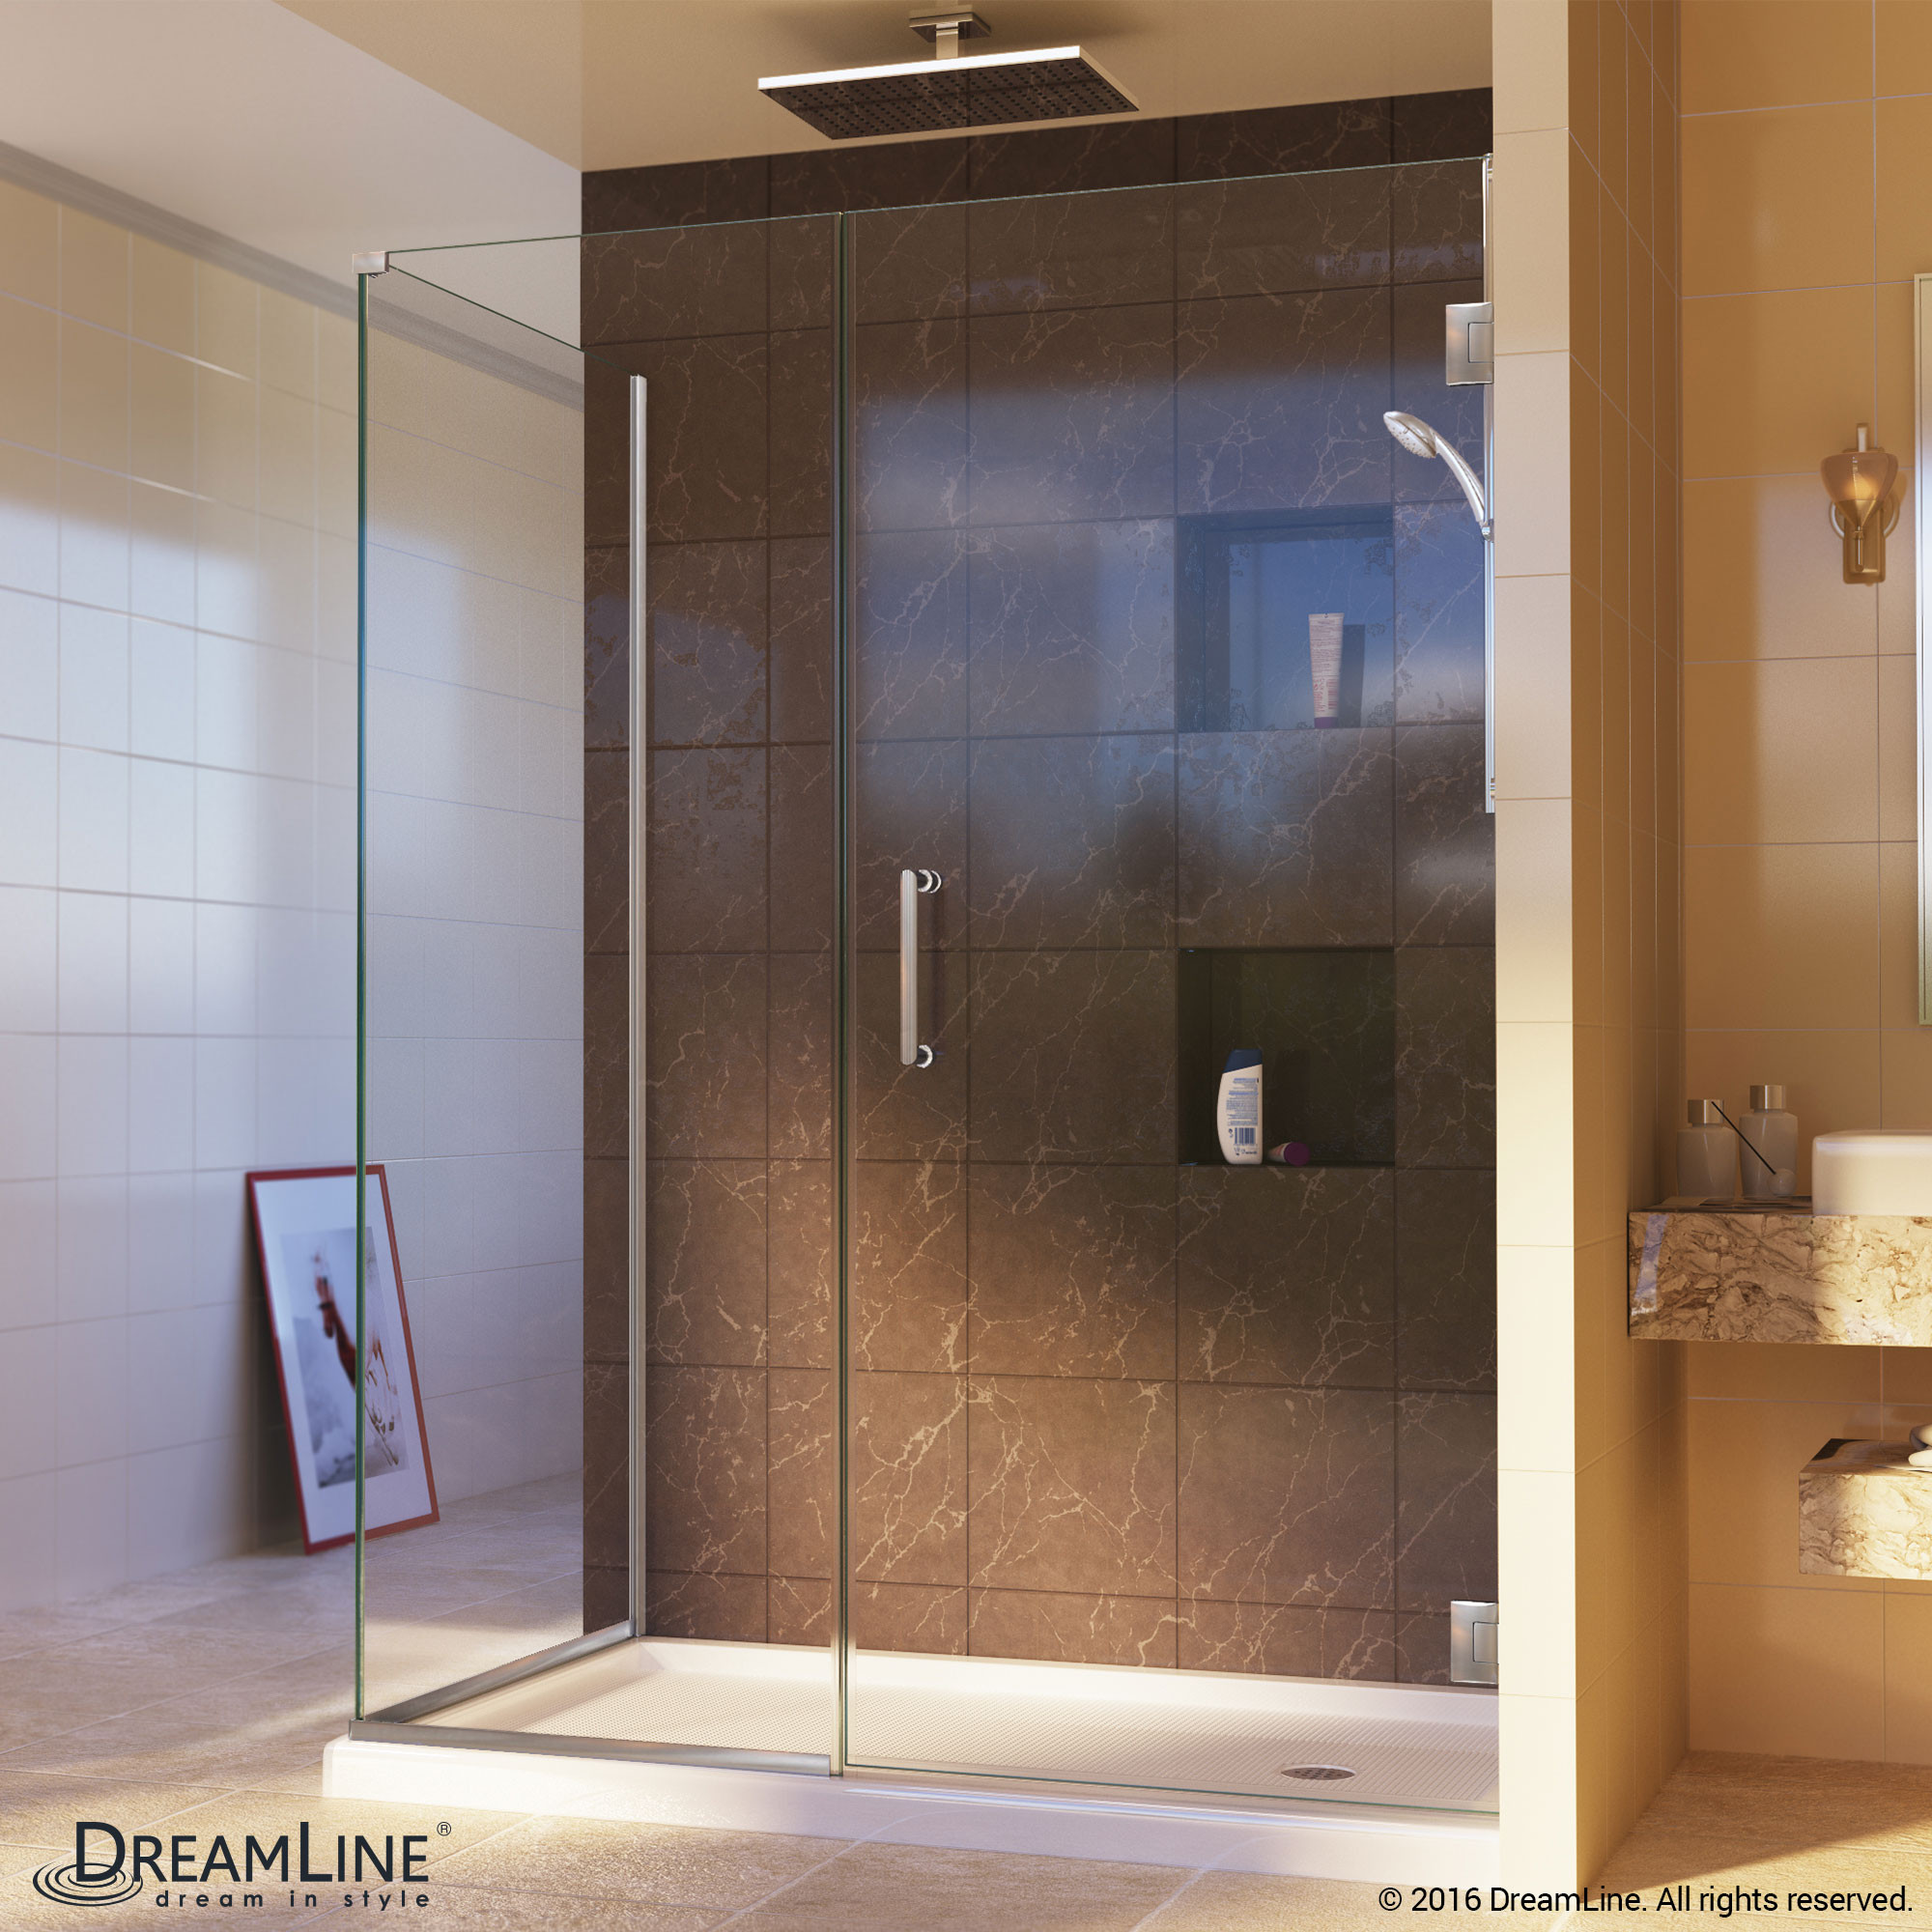 DreamLine SHEN-24585340-04 Unidoor Plus Hinged Shower Enclosure In Brushed Nickel Finish Hardware